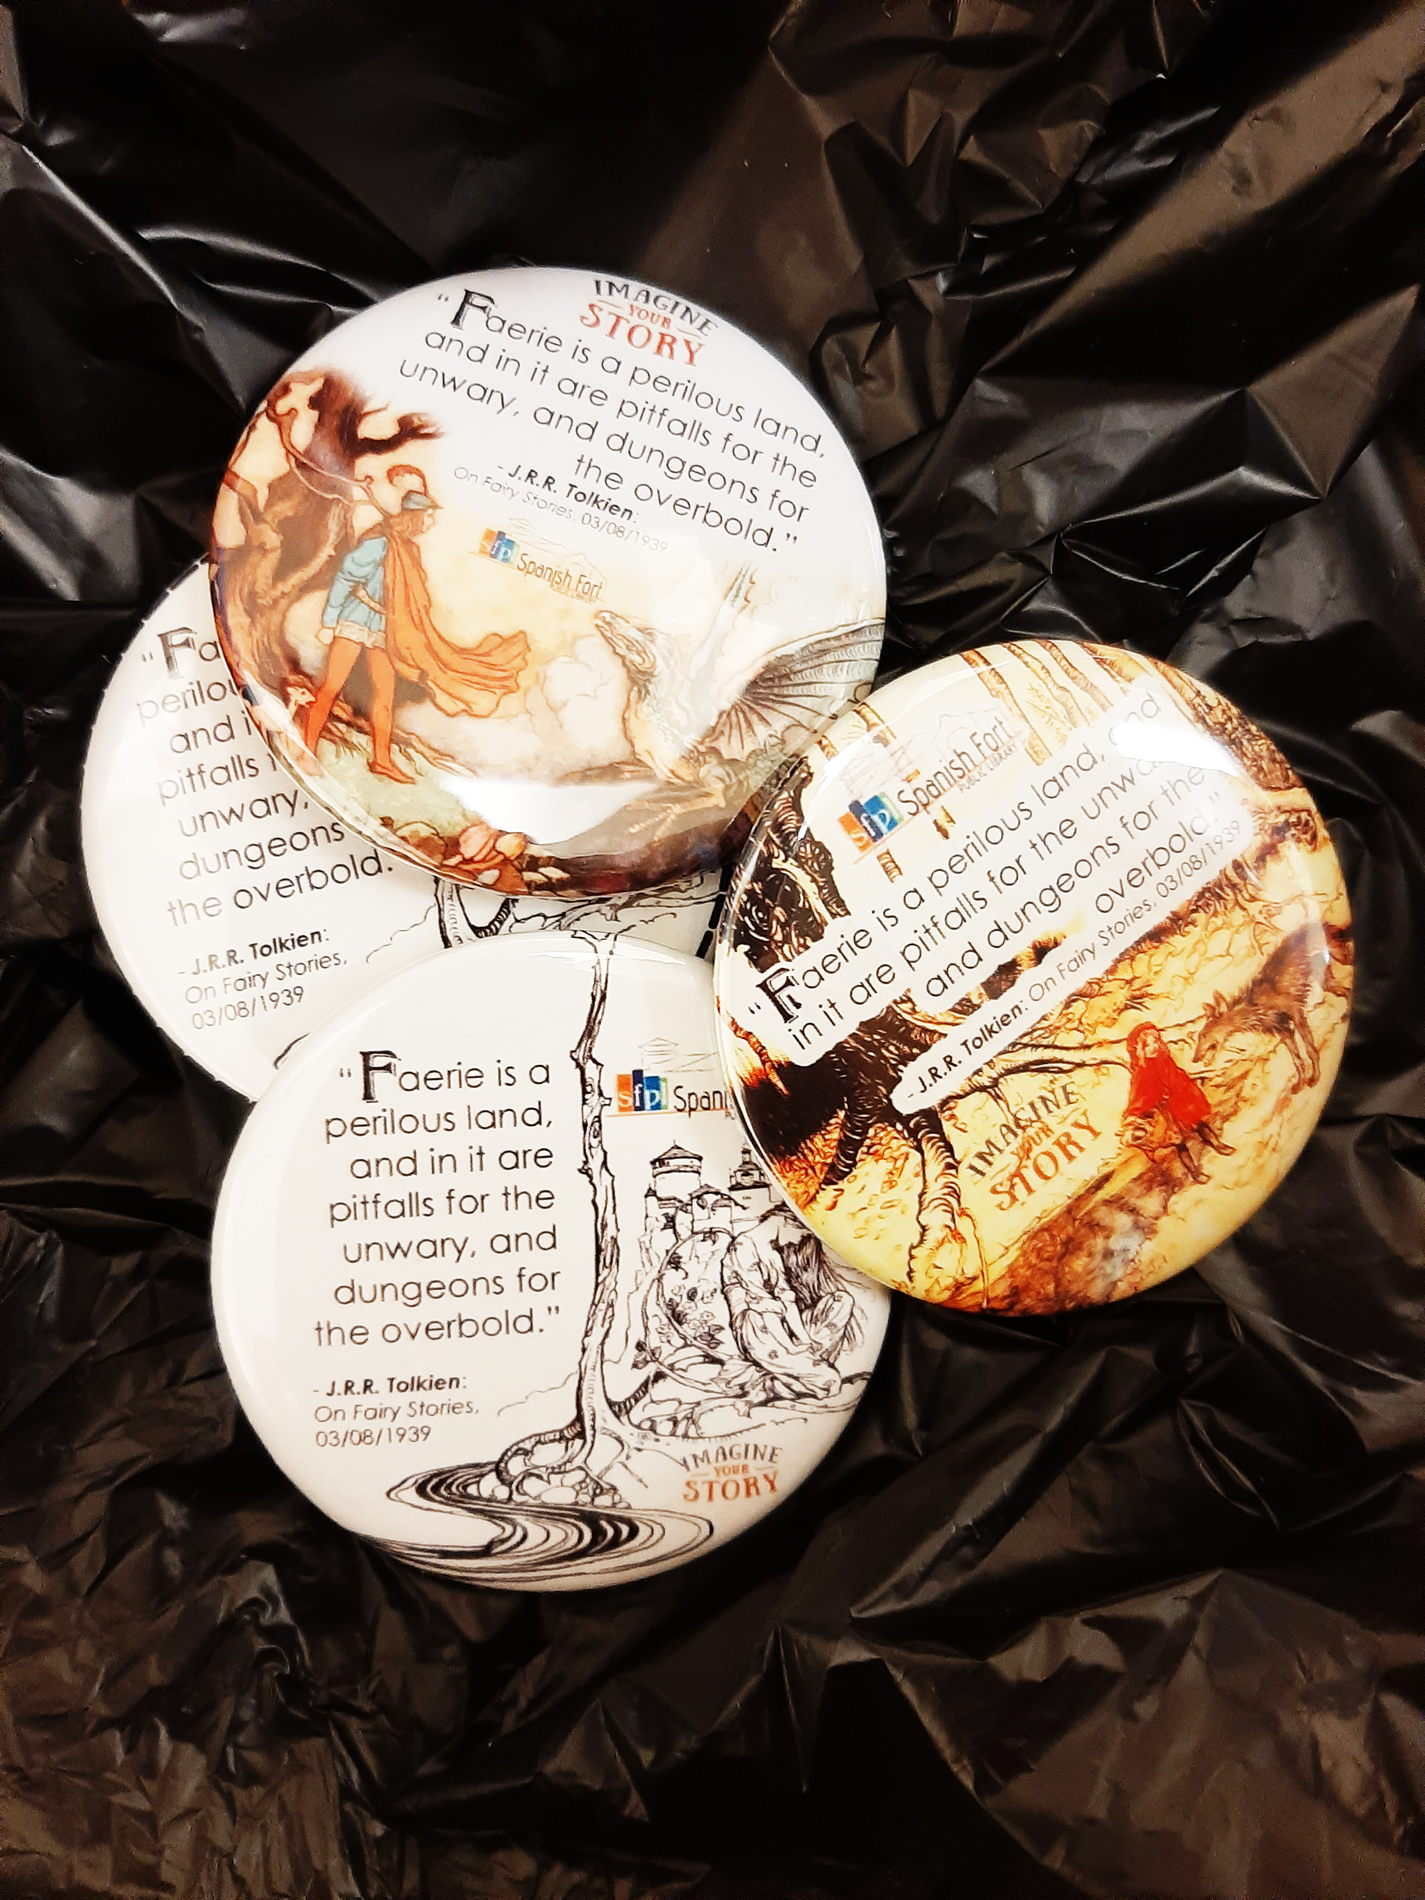 photo of a variety of button pins that can be won by participating in the Grown up Faerie tale Challenge